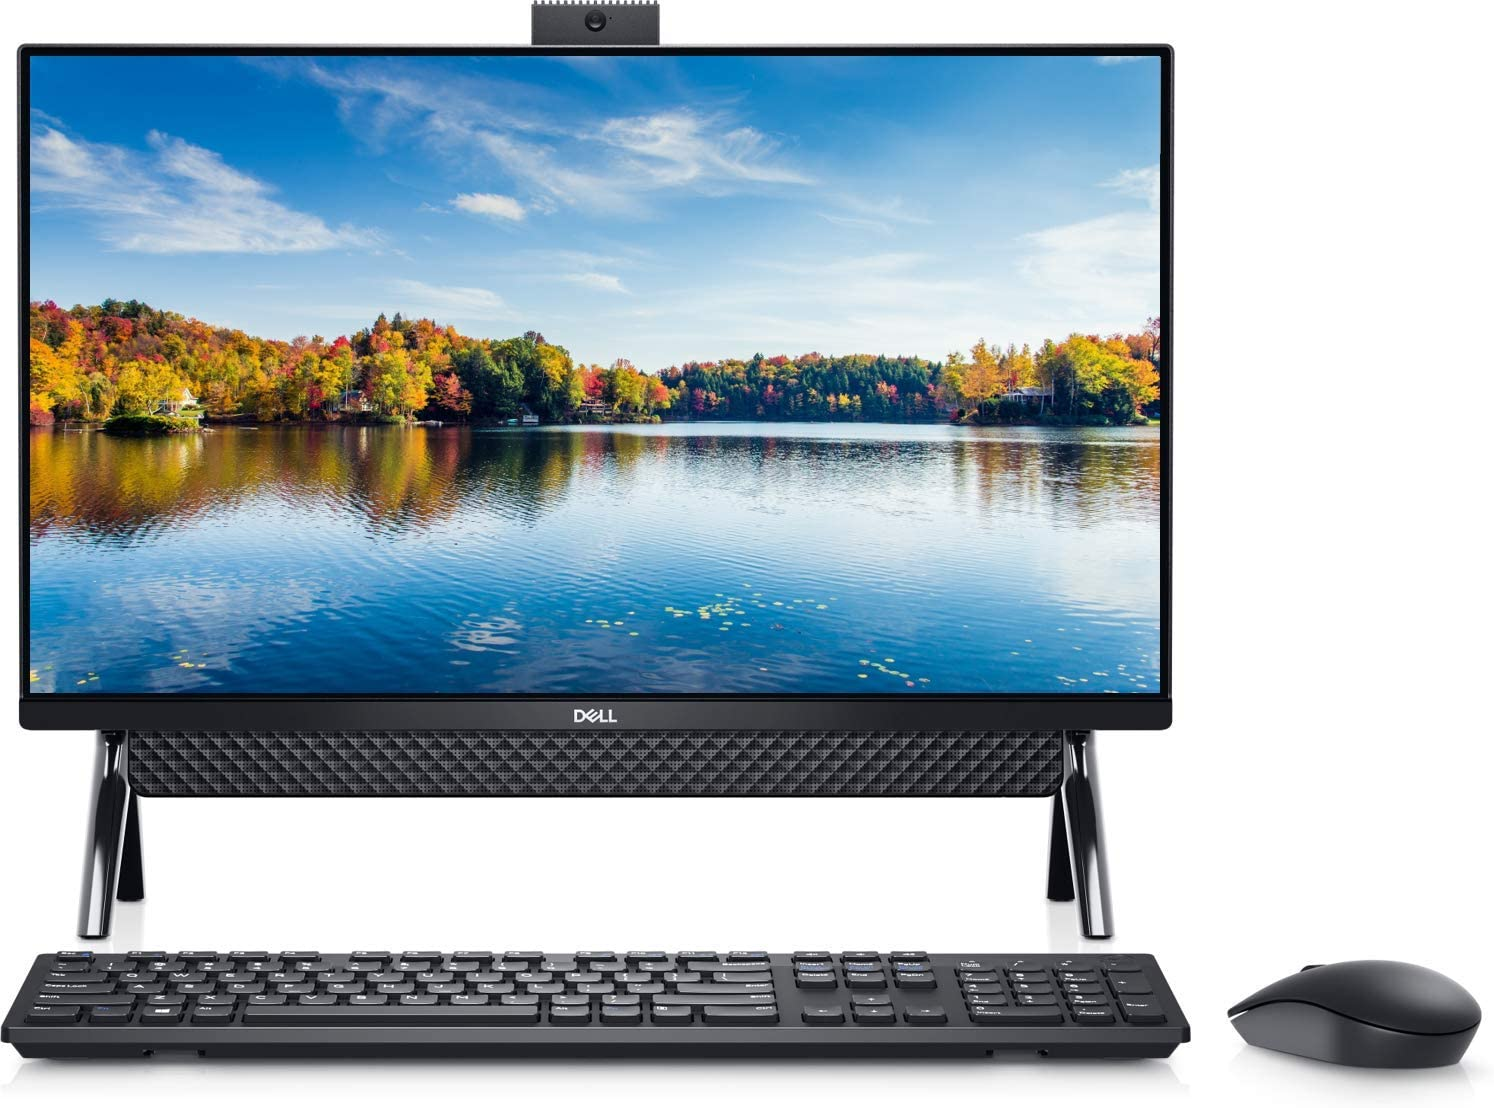 Dell Inspiron 5000 All in One Desktop 24